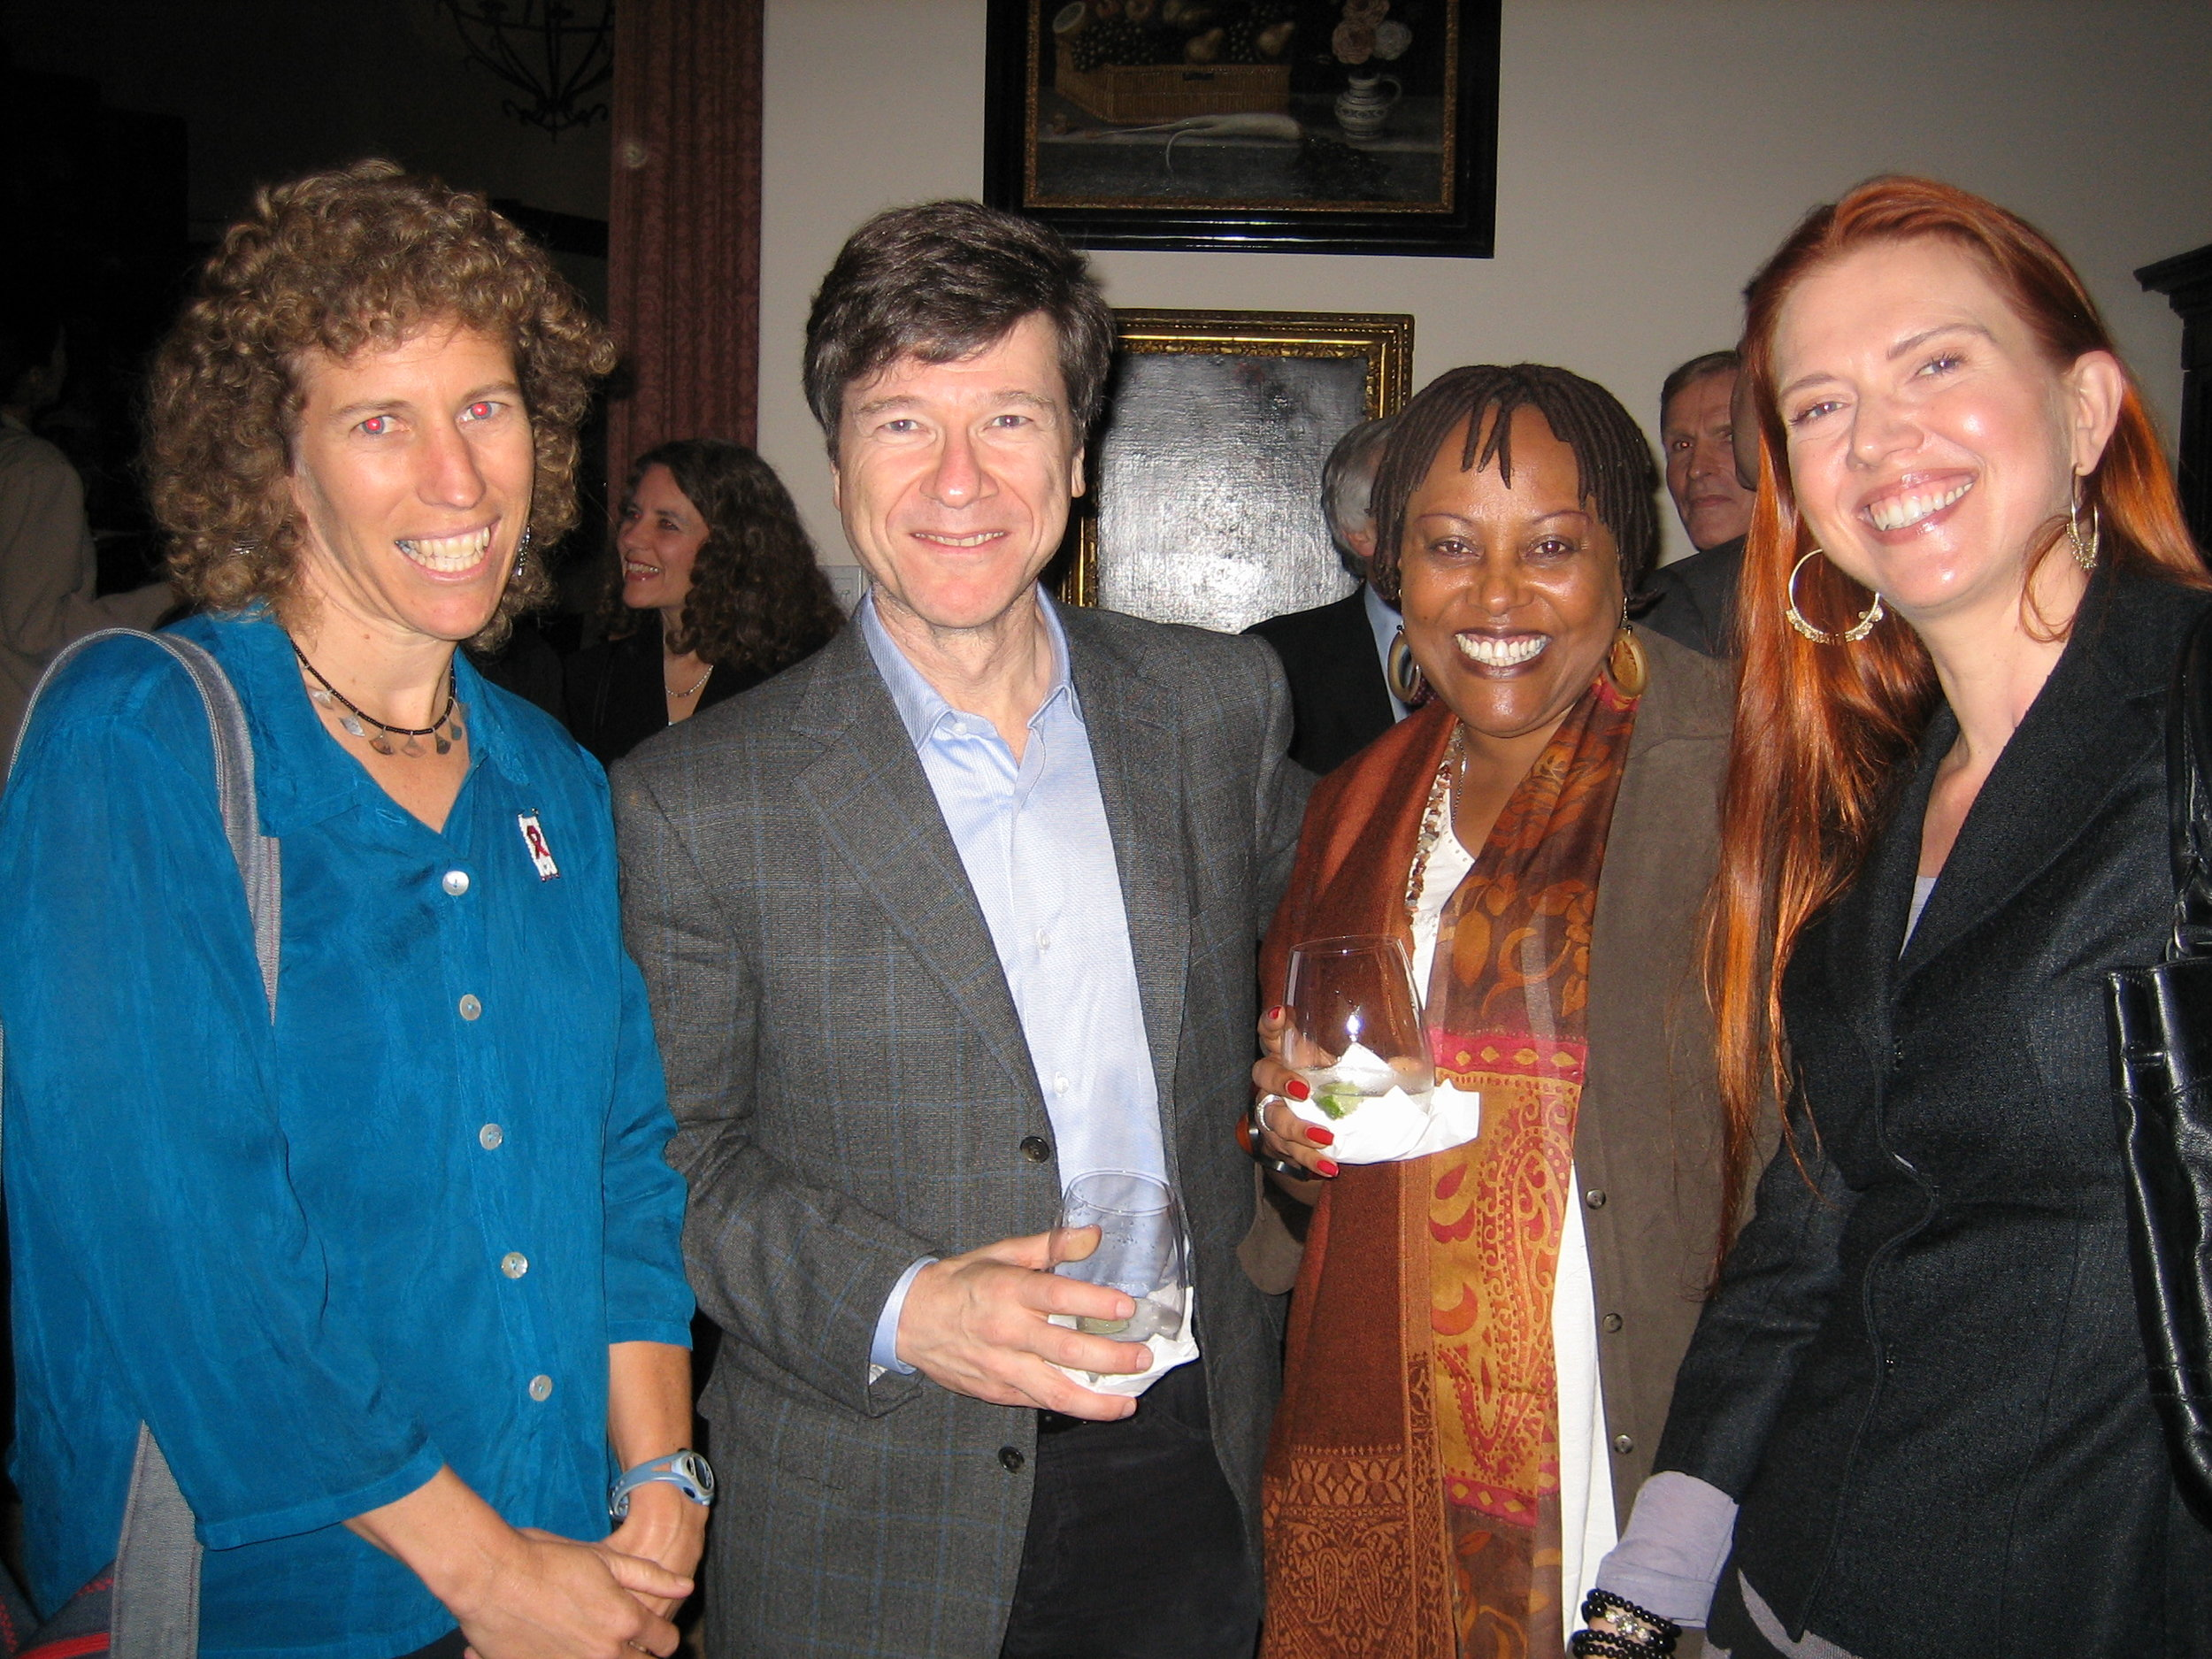 Jeffrey Sachs and Mary Balikungeri with Firelight Director Jen Astone (far left) and Founder Kerry Olson (far right)